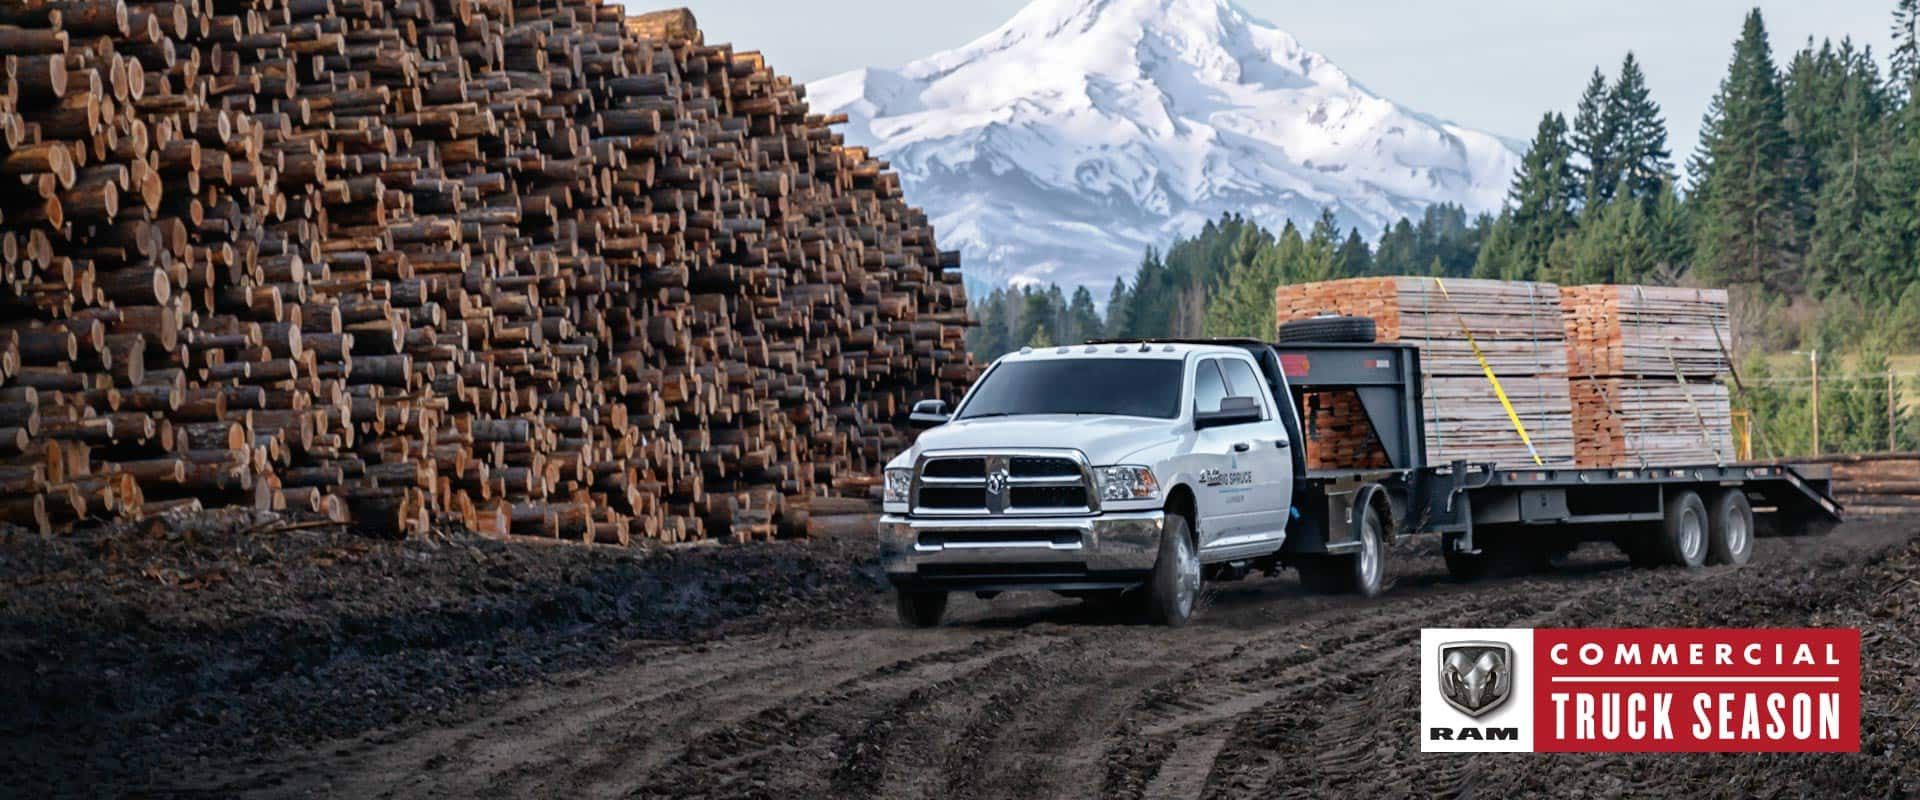 2018 Ram Trucks Chassis Cab Heavy Duty Commercial Truck Pto Wiring Diagram Gps Trackers Now Get Up To 2500 Combined Cash On 3500